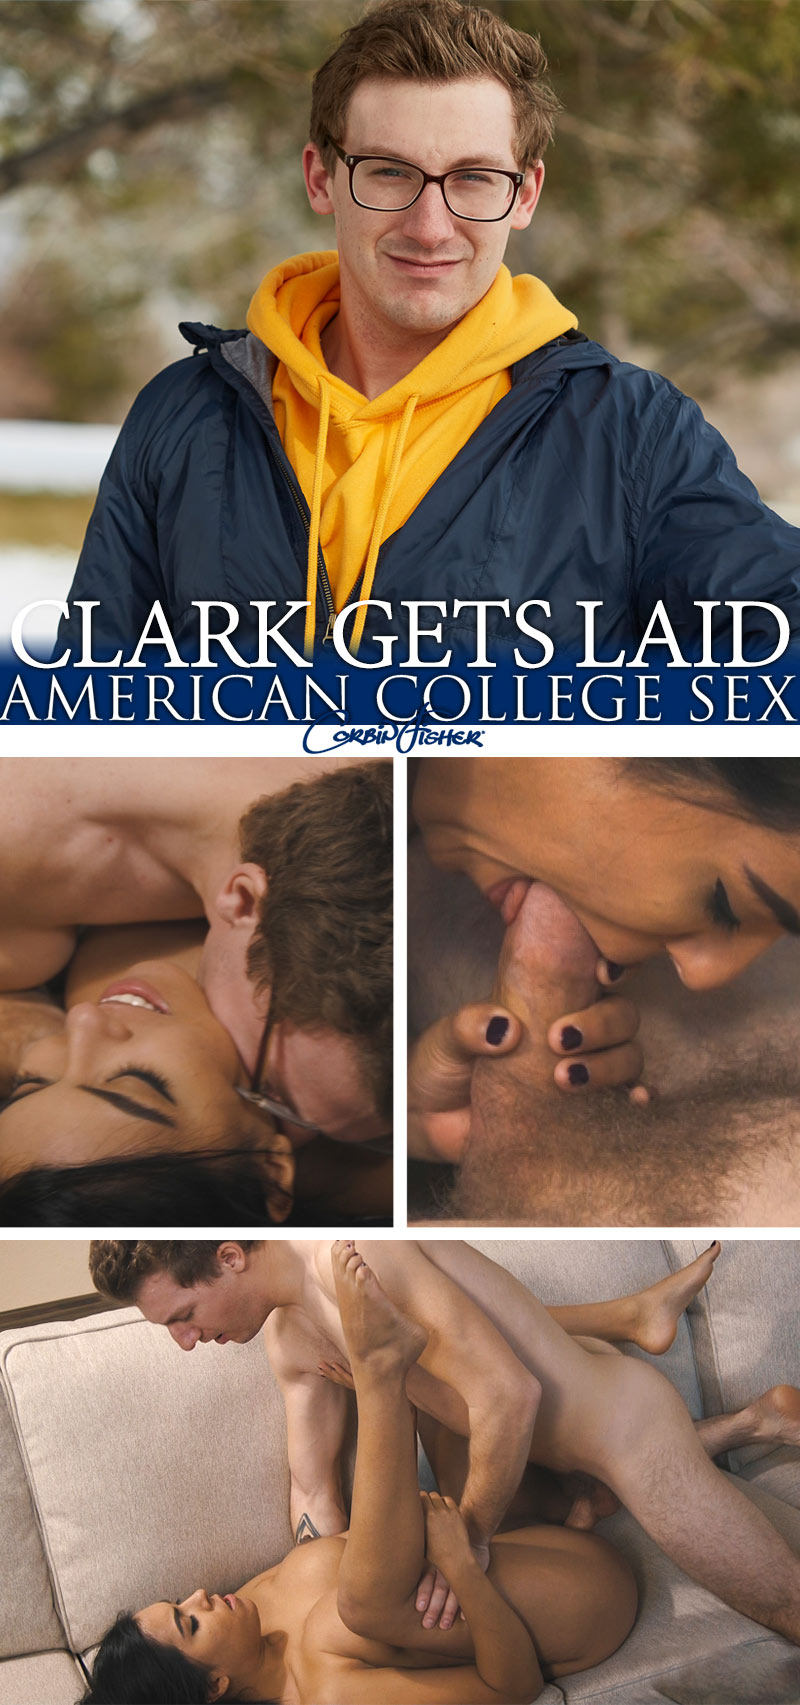 Clark Gets Laid (Bareback) at AmateurCollegeSex